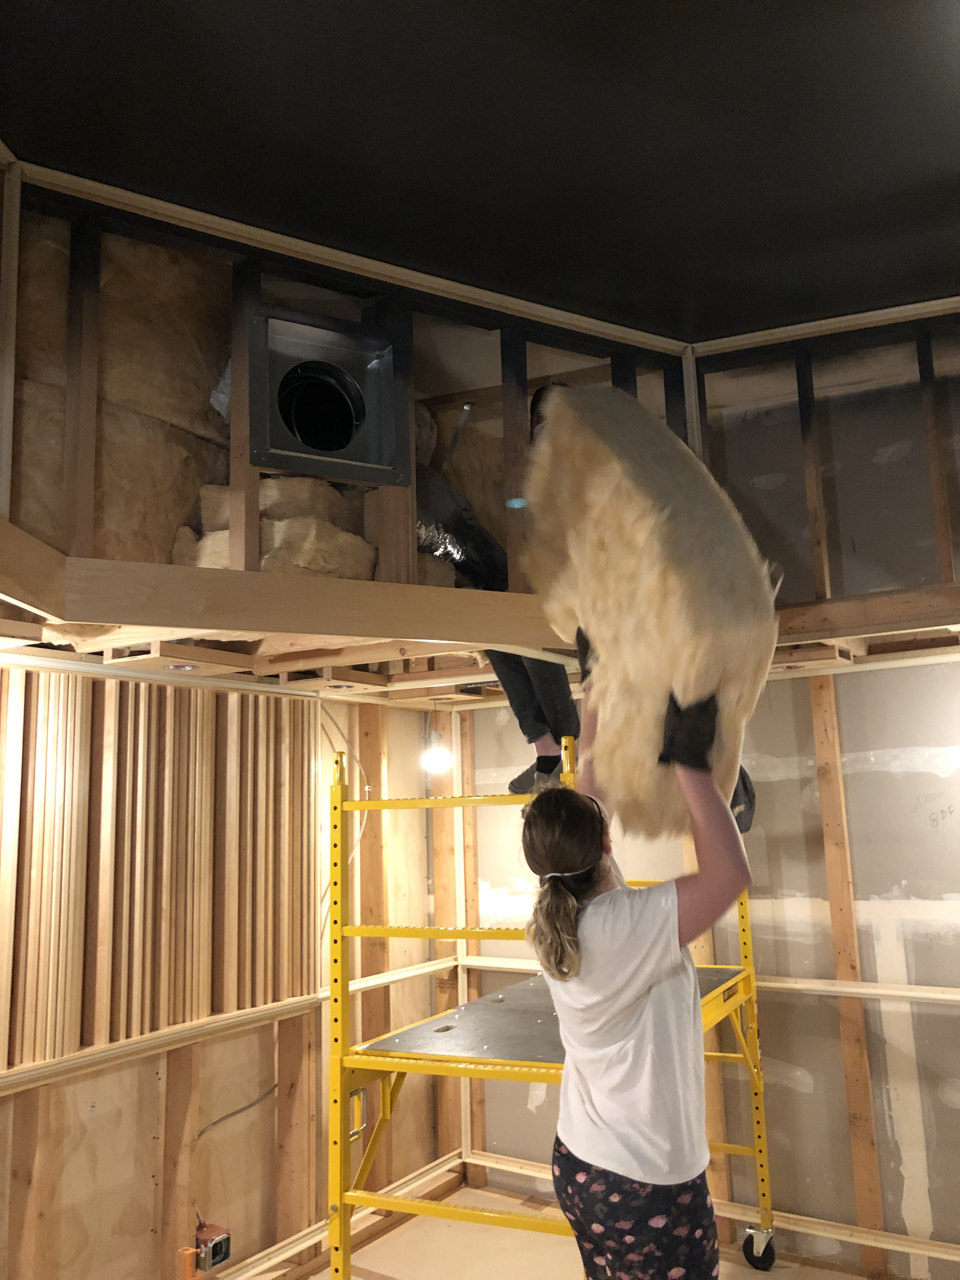 Maren and Nathan, both audio engineers, are placing batting insulation in the upper soffit of control room 2. They have to be careful to fill as much of the cavity as possible without compressing the fiberglass.